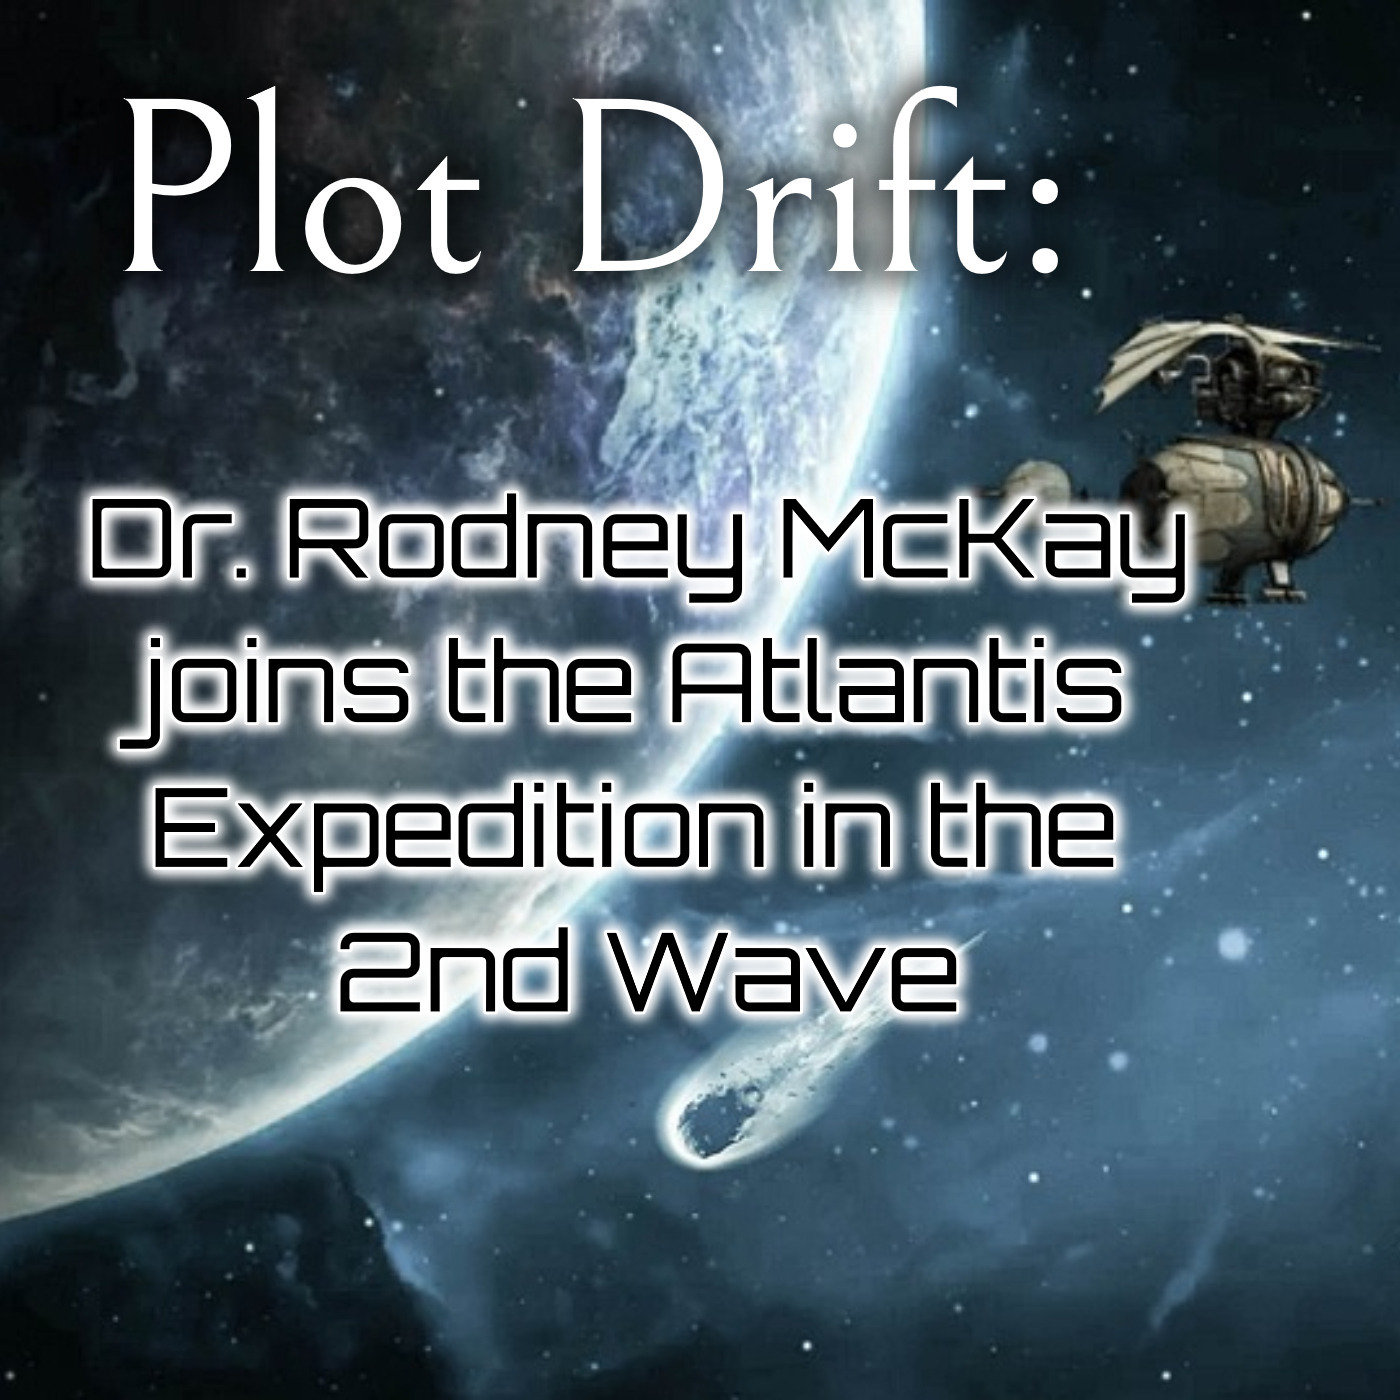 Plot Drift: Rodney McKay Joins the Expedition in the Second Wave